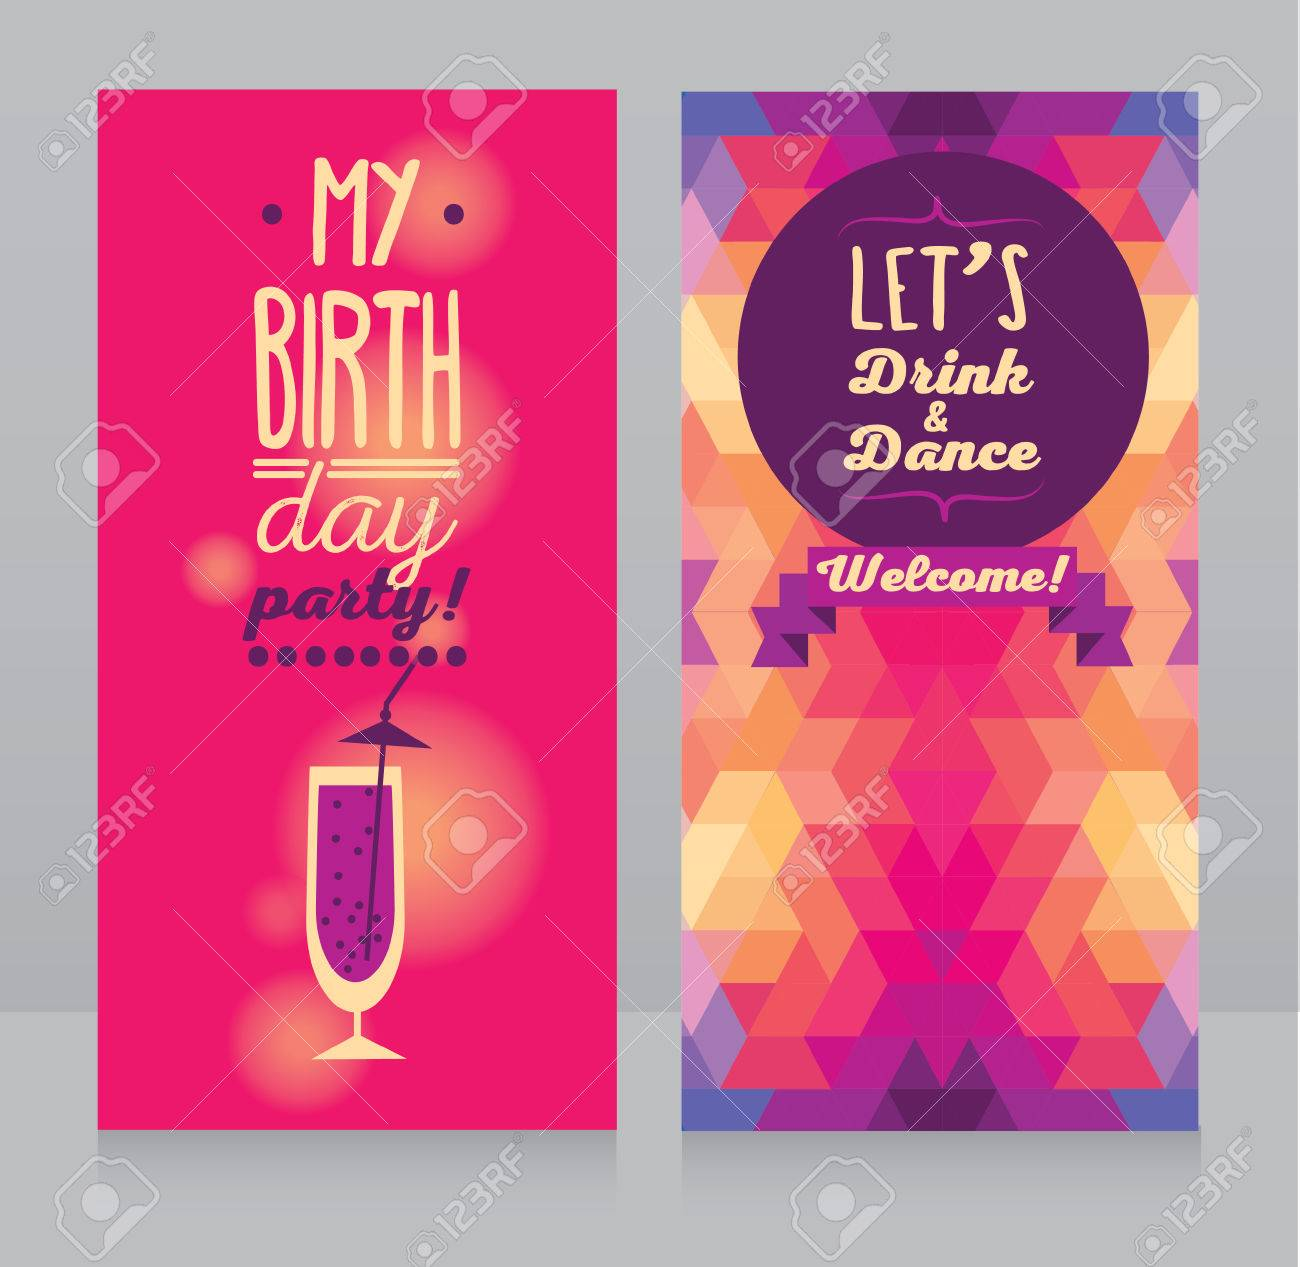 Invitation For Birthday Party Can Be Used As Flyer For Bar Party